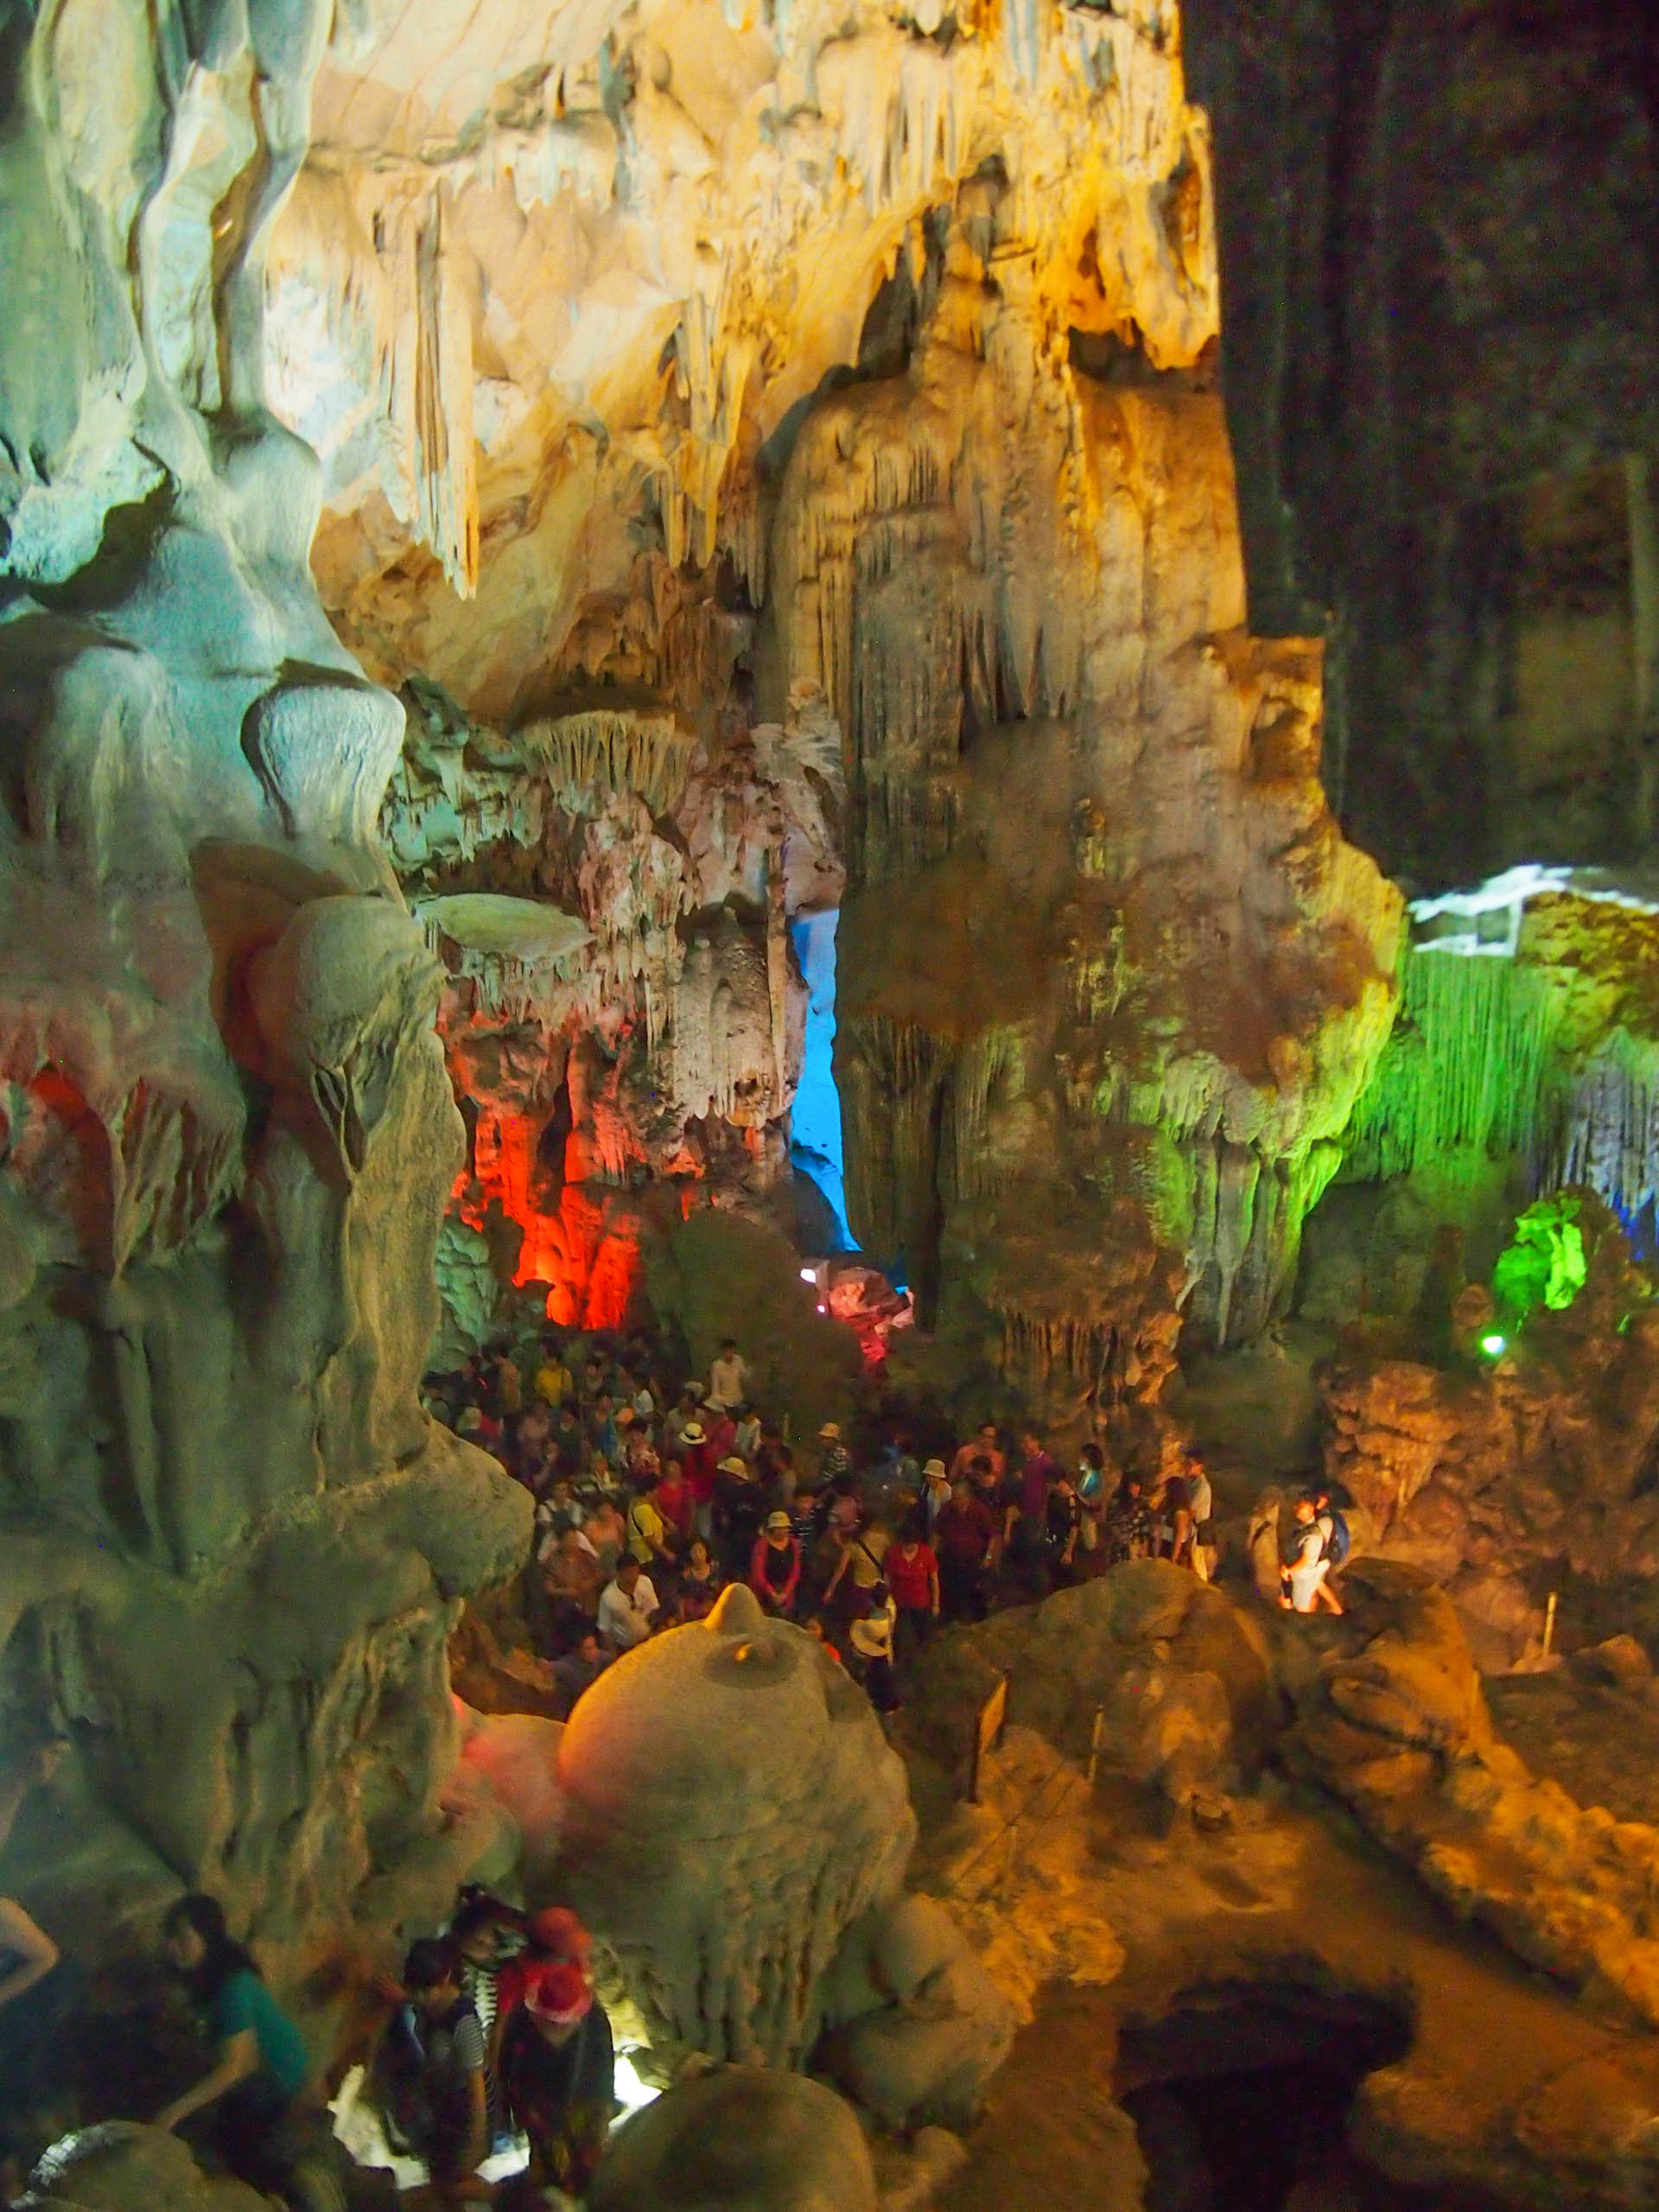 You can see how huge (and how crowded!) the cave is from this pic